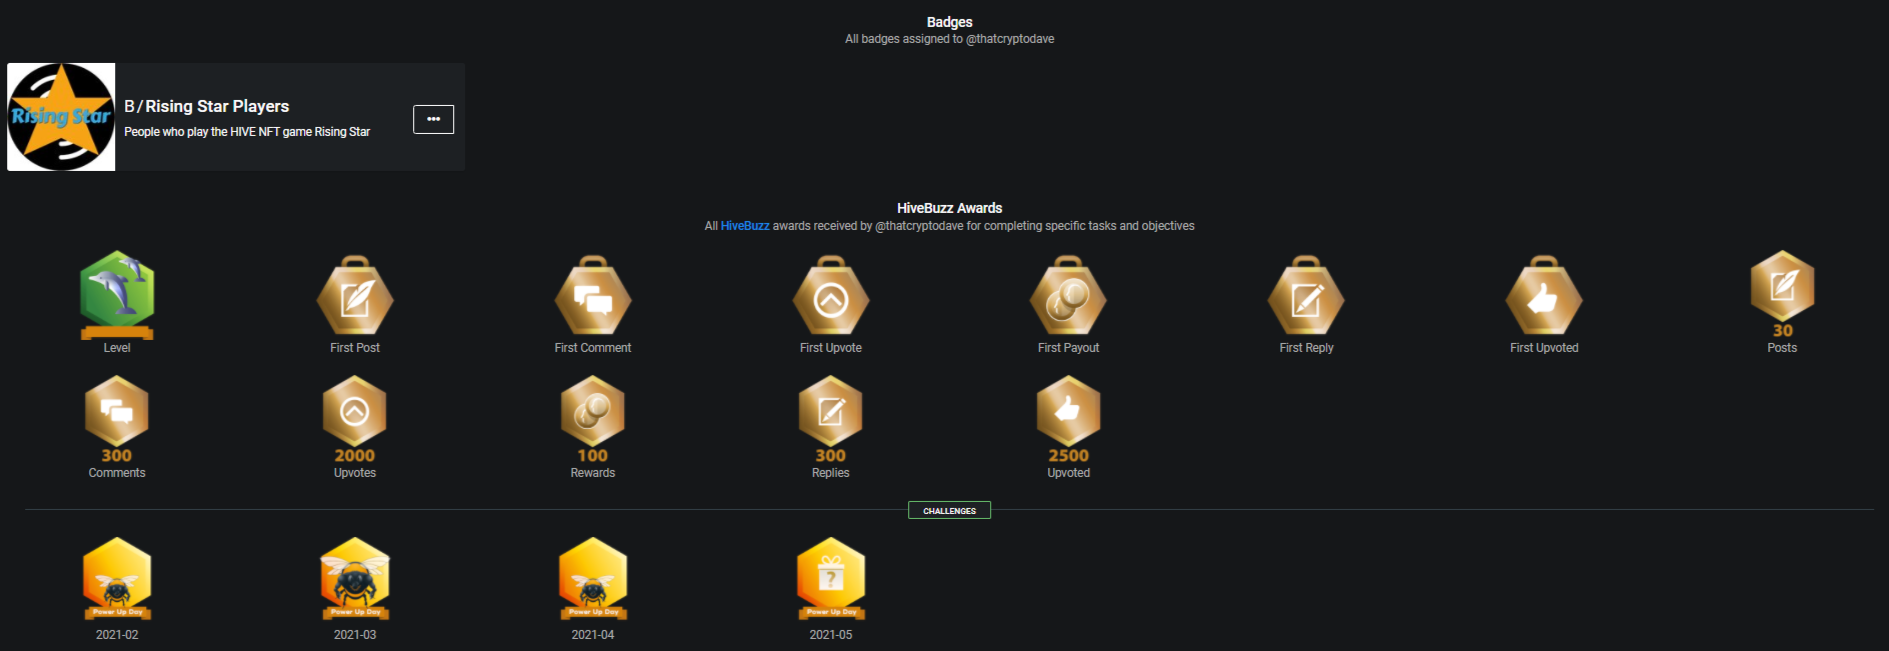 thatcryptodave- badges on Hive.png